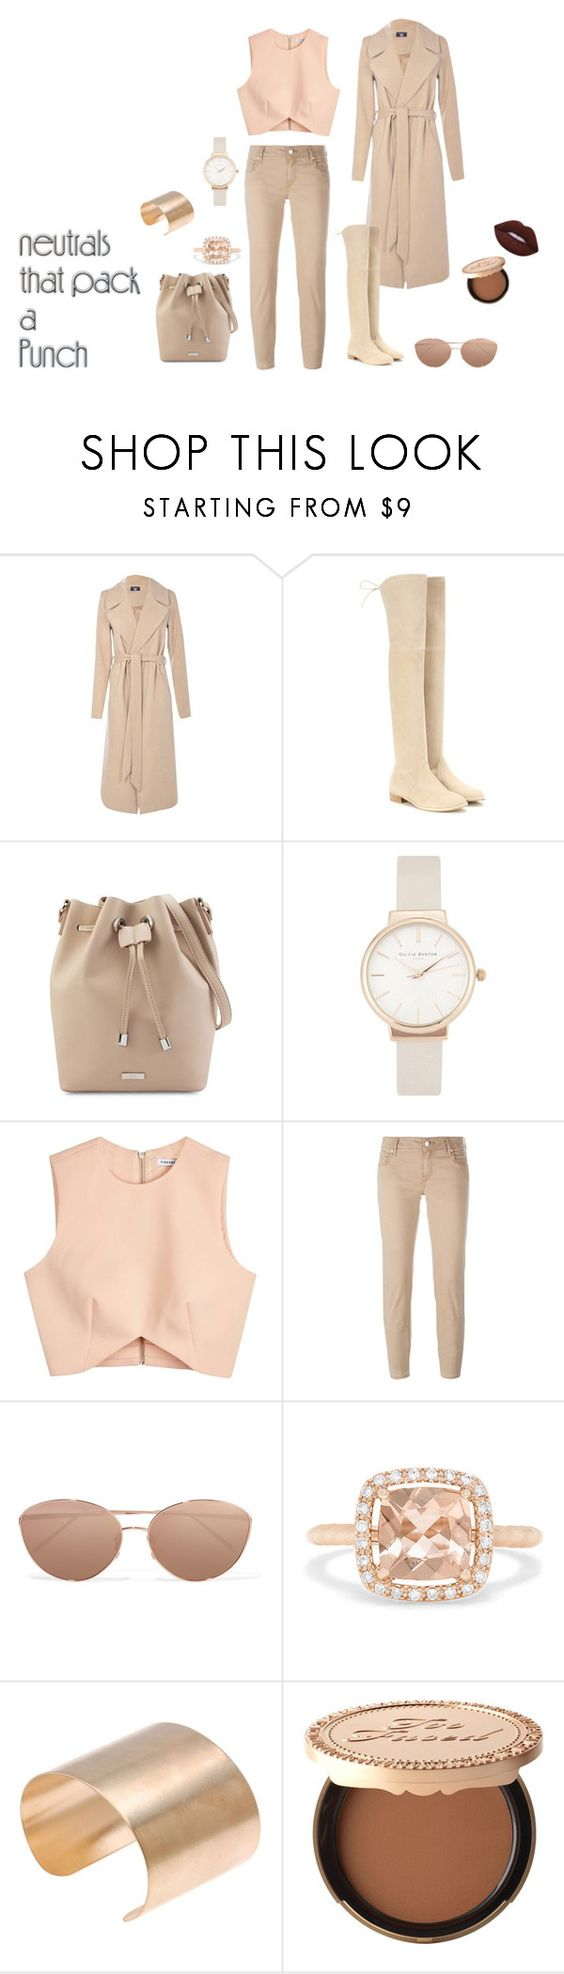 """Neutral"" by zsugabubus ❤ liked on Polyvore featuring Boohoo, Stuart Weitzman, Olivia Burton, Finders Keepers, Jacob Cohёn, Linda Farrow, Effy Jewelry, Too Faced Cosmetics and Lime Crime"